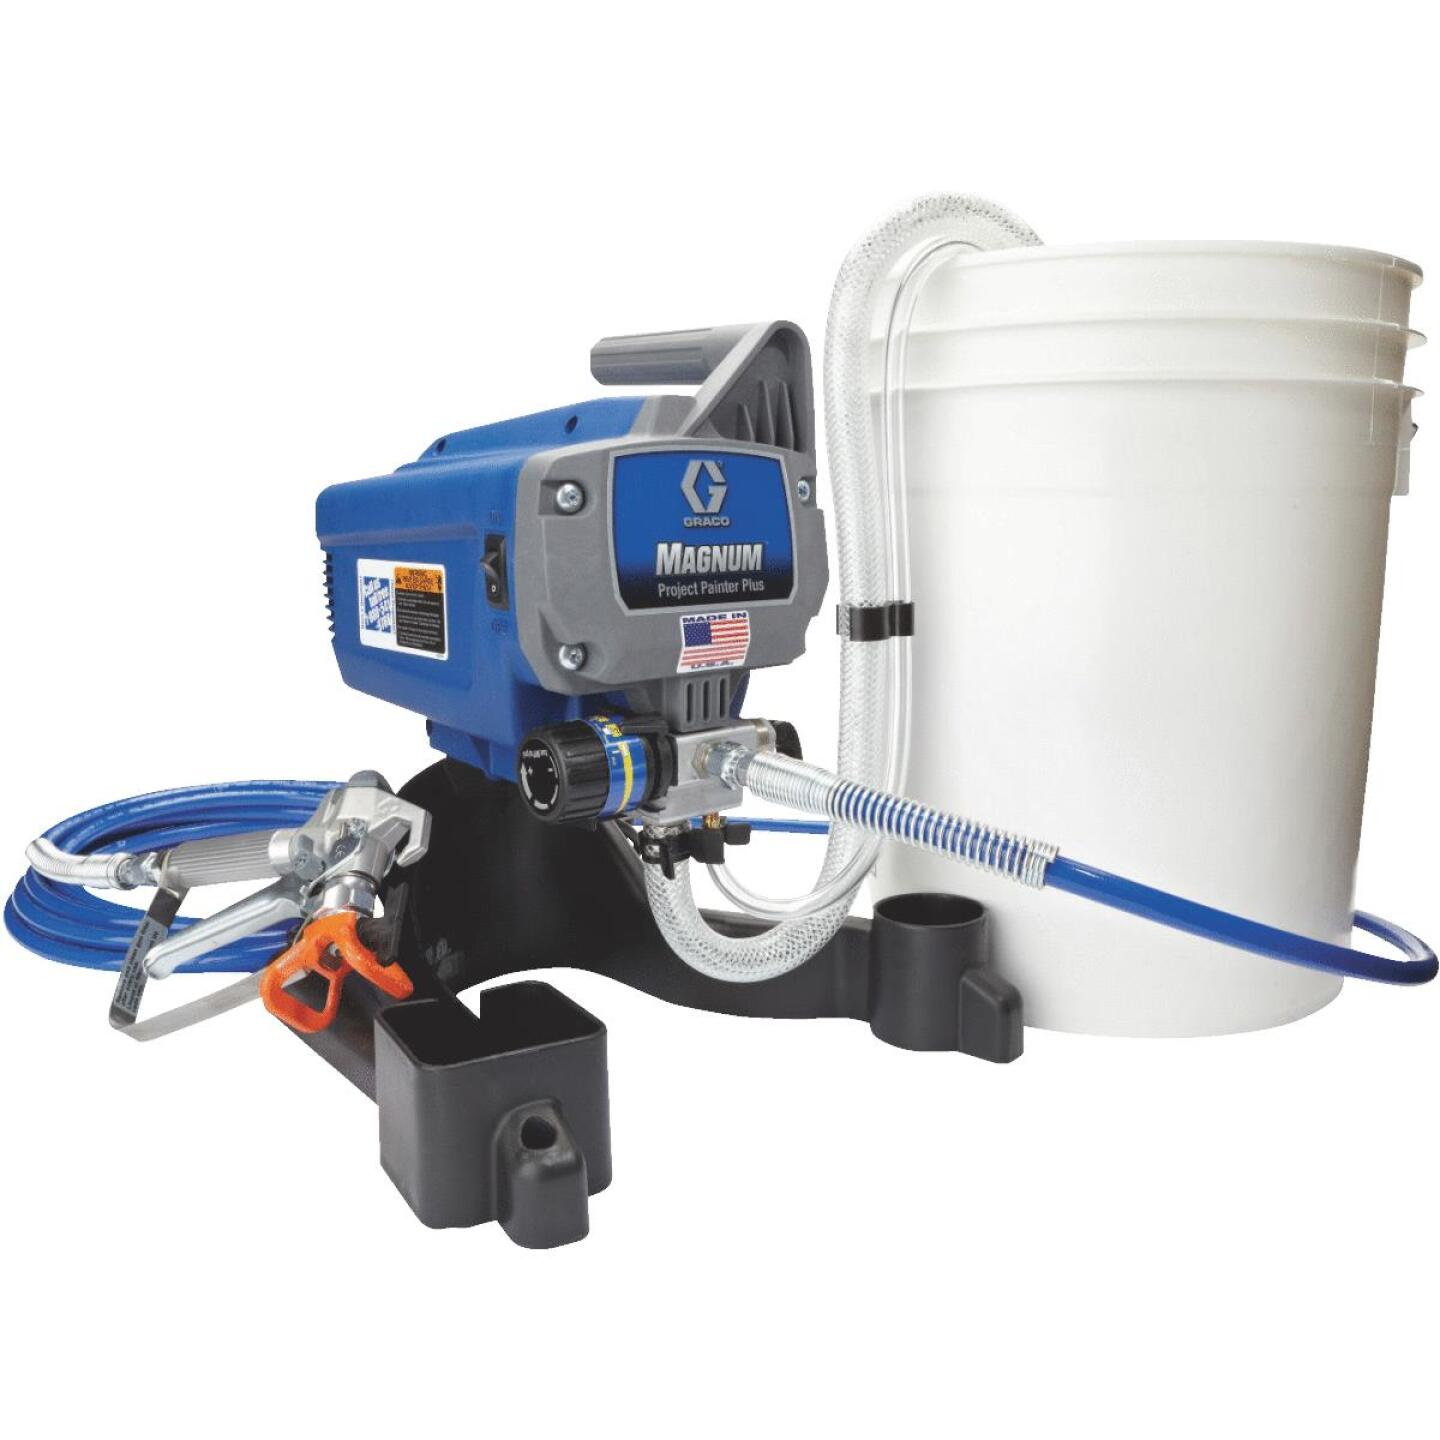 Graco Magnum Project Painter Plus Airless Paint Sprayer Image 1